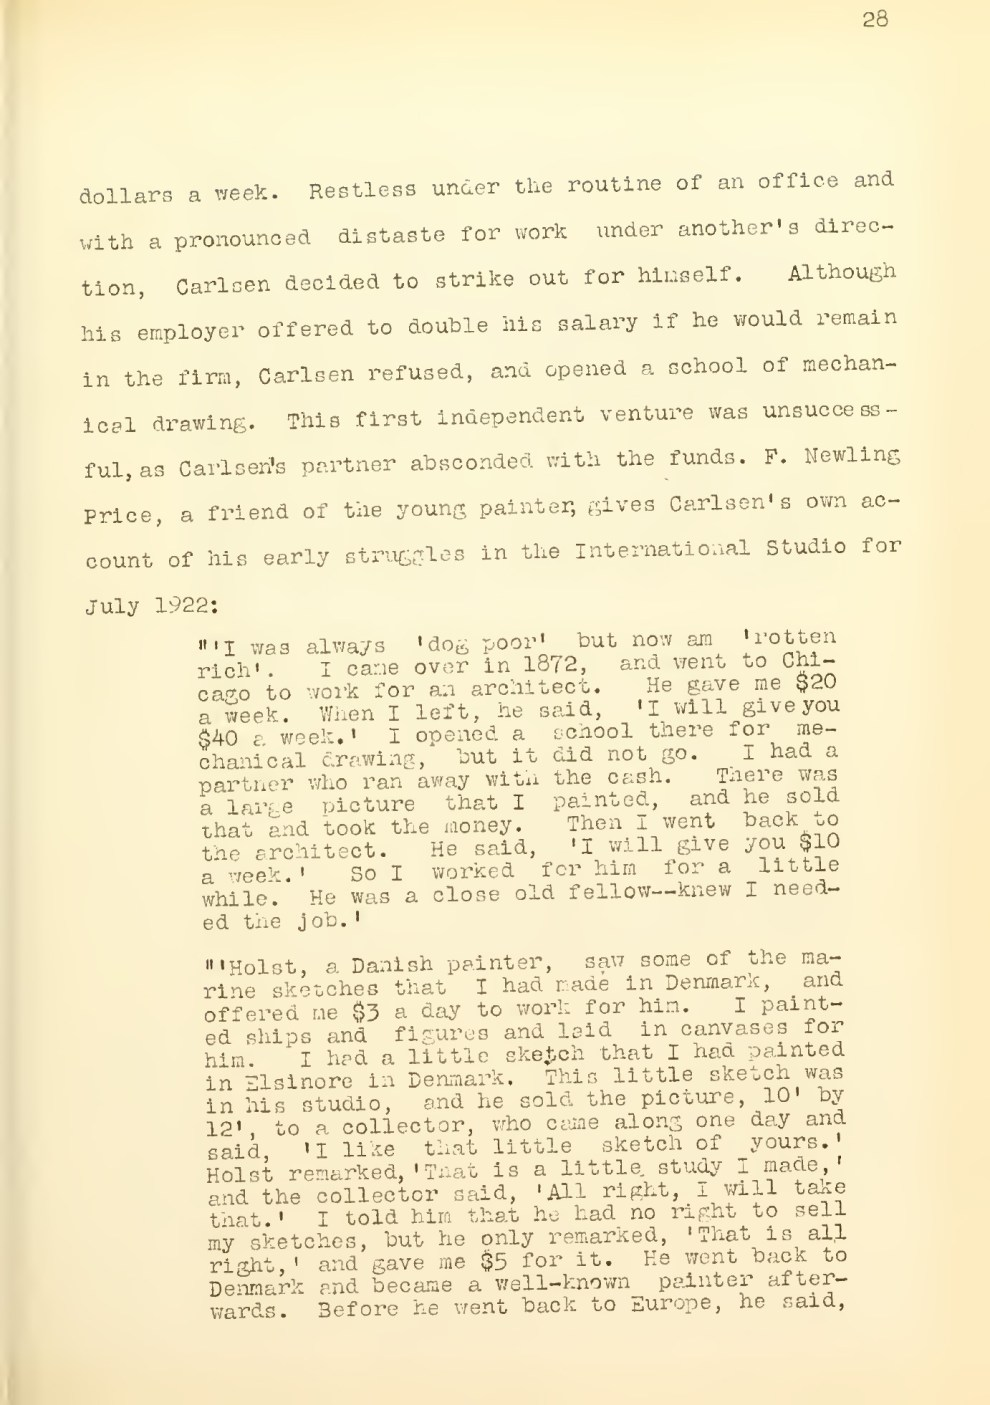 """W.P.A. Project 2871, OP 65-3-3632: Abstract from California Art Research"" Edited by Gene Haily, Volume 5, pages 27-63"